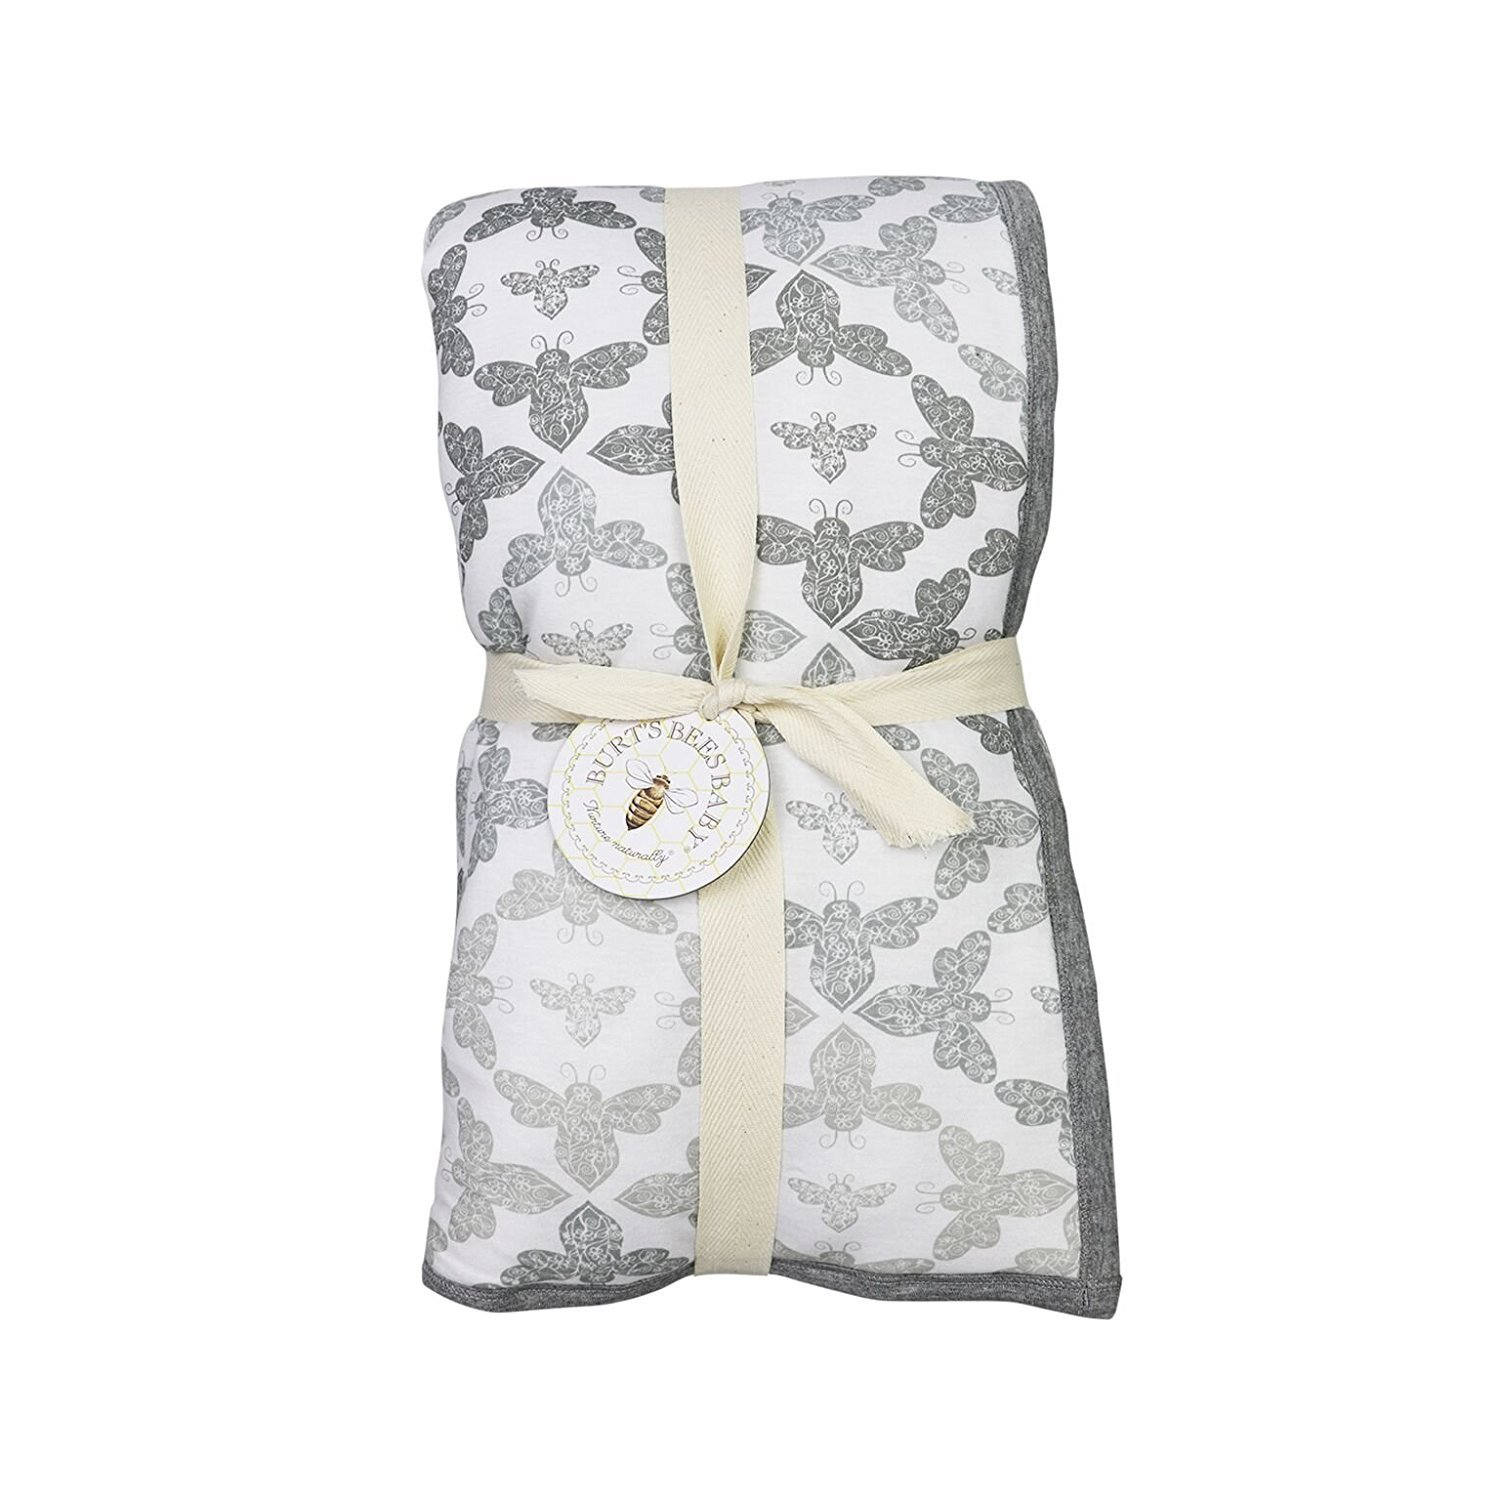 Burt's Bees Baby - Ombre Blossom Reversible Quilt, 100% Organic and 100% Polyester Fill (Heather Grey) Burt's Bees Baby HM10229-HTG-OS-H